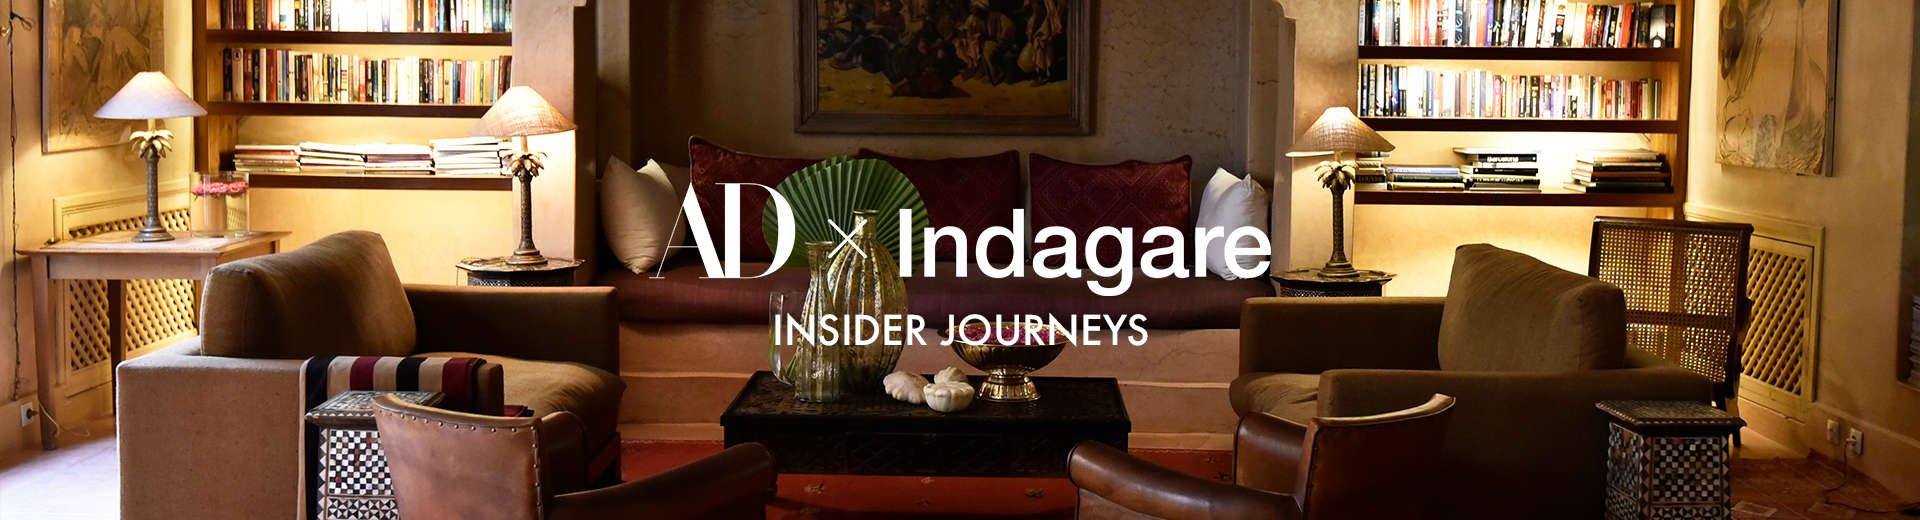 architectural digest x indagare insider journeys